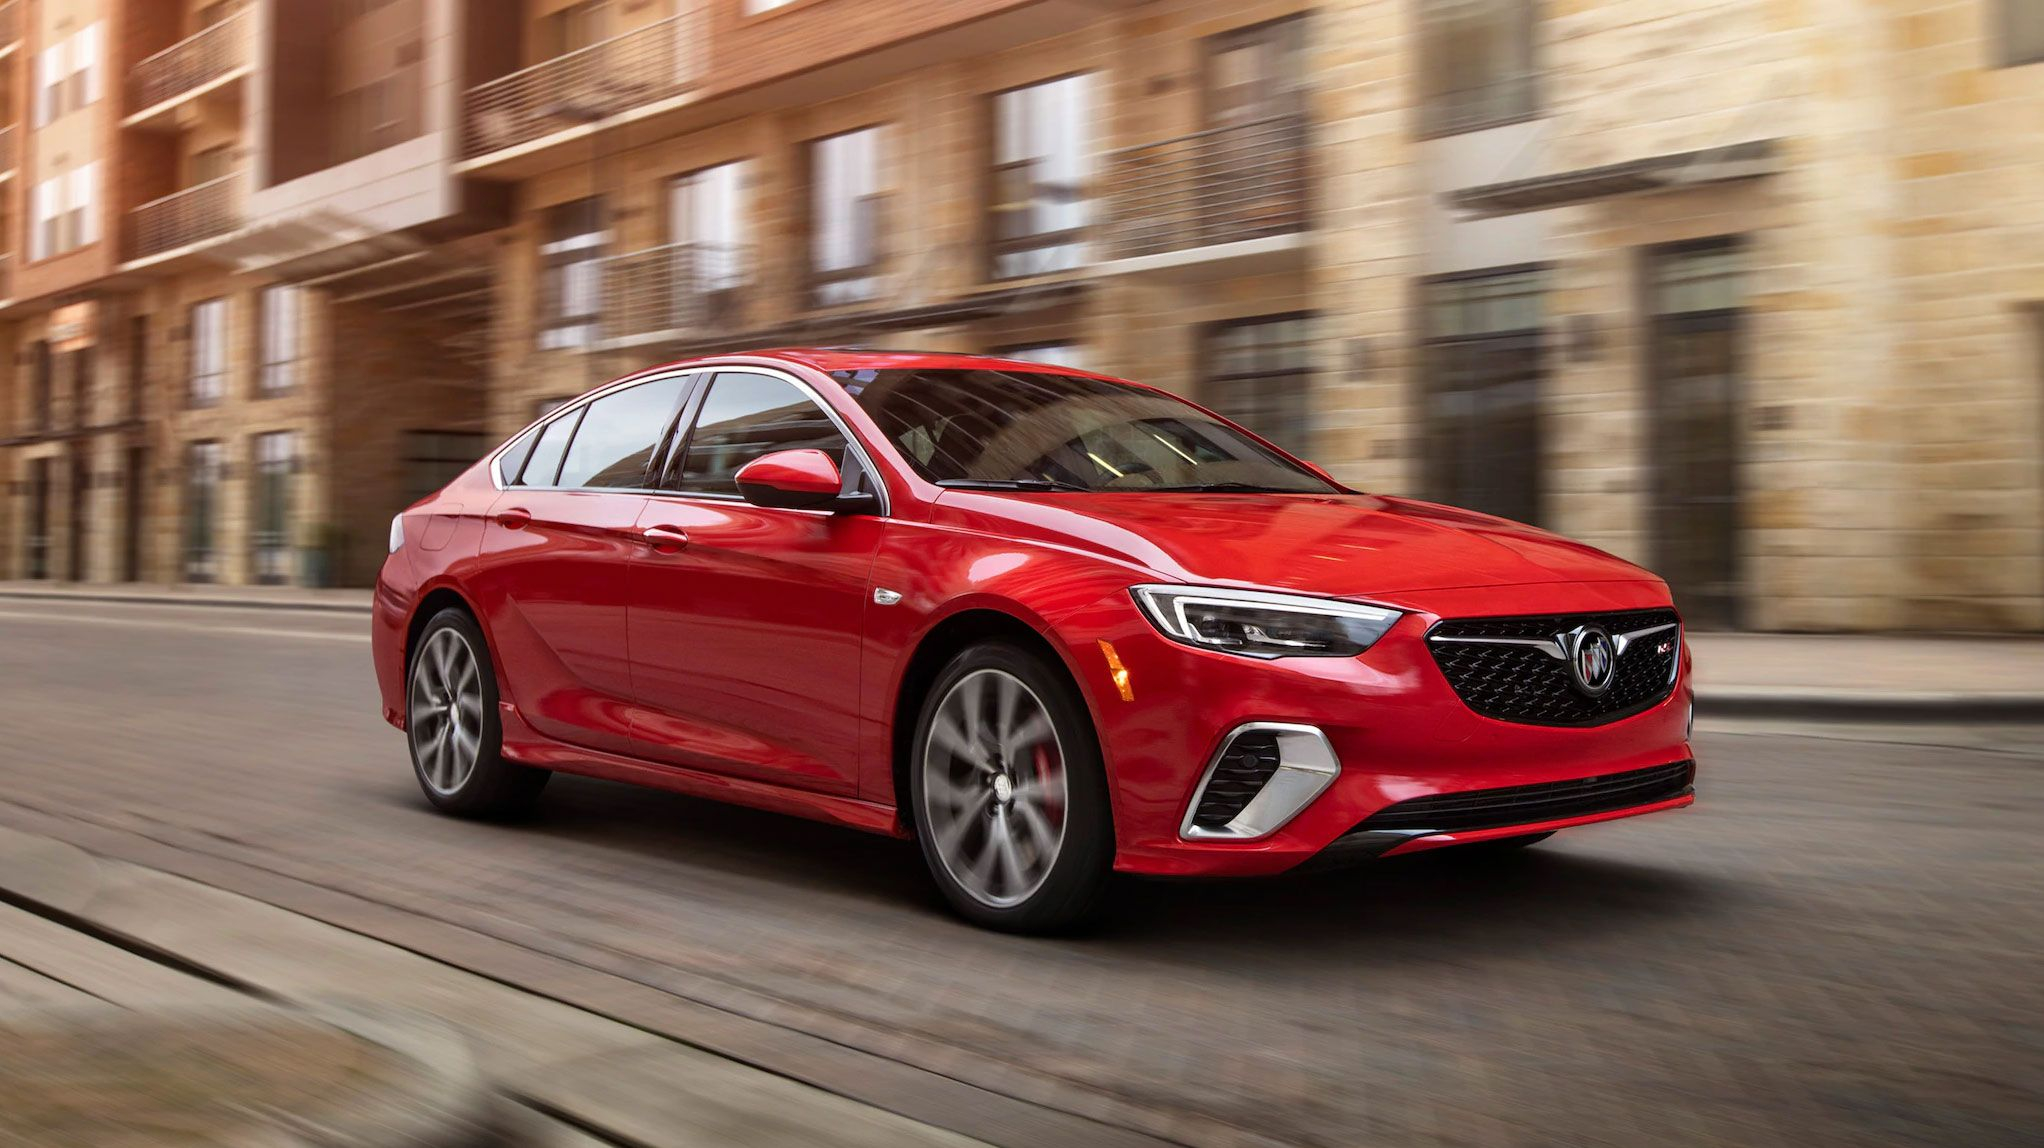 2020 Buick Regal Gs Review, Pricing, And Specs New 2021 Buick Regal Gs Price, Review, 0-60